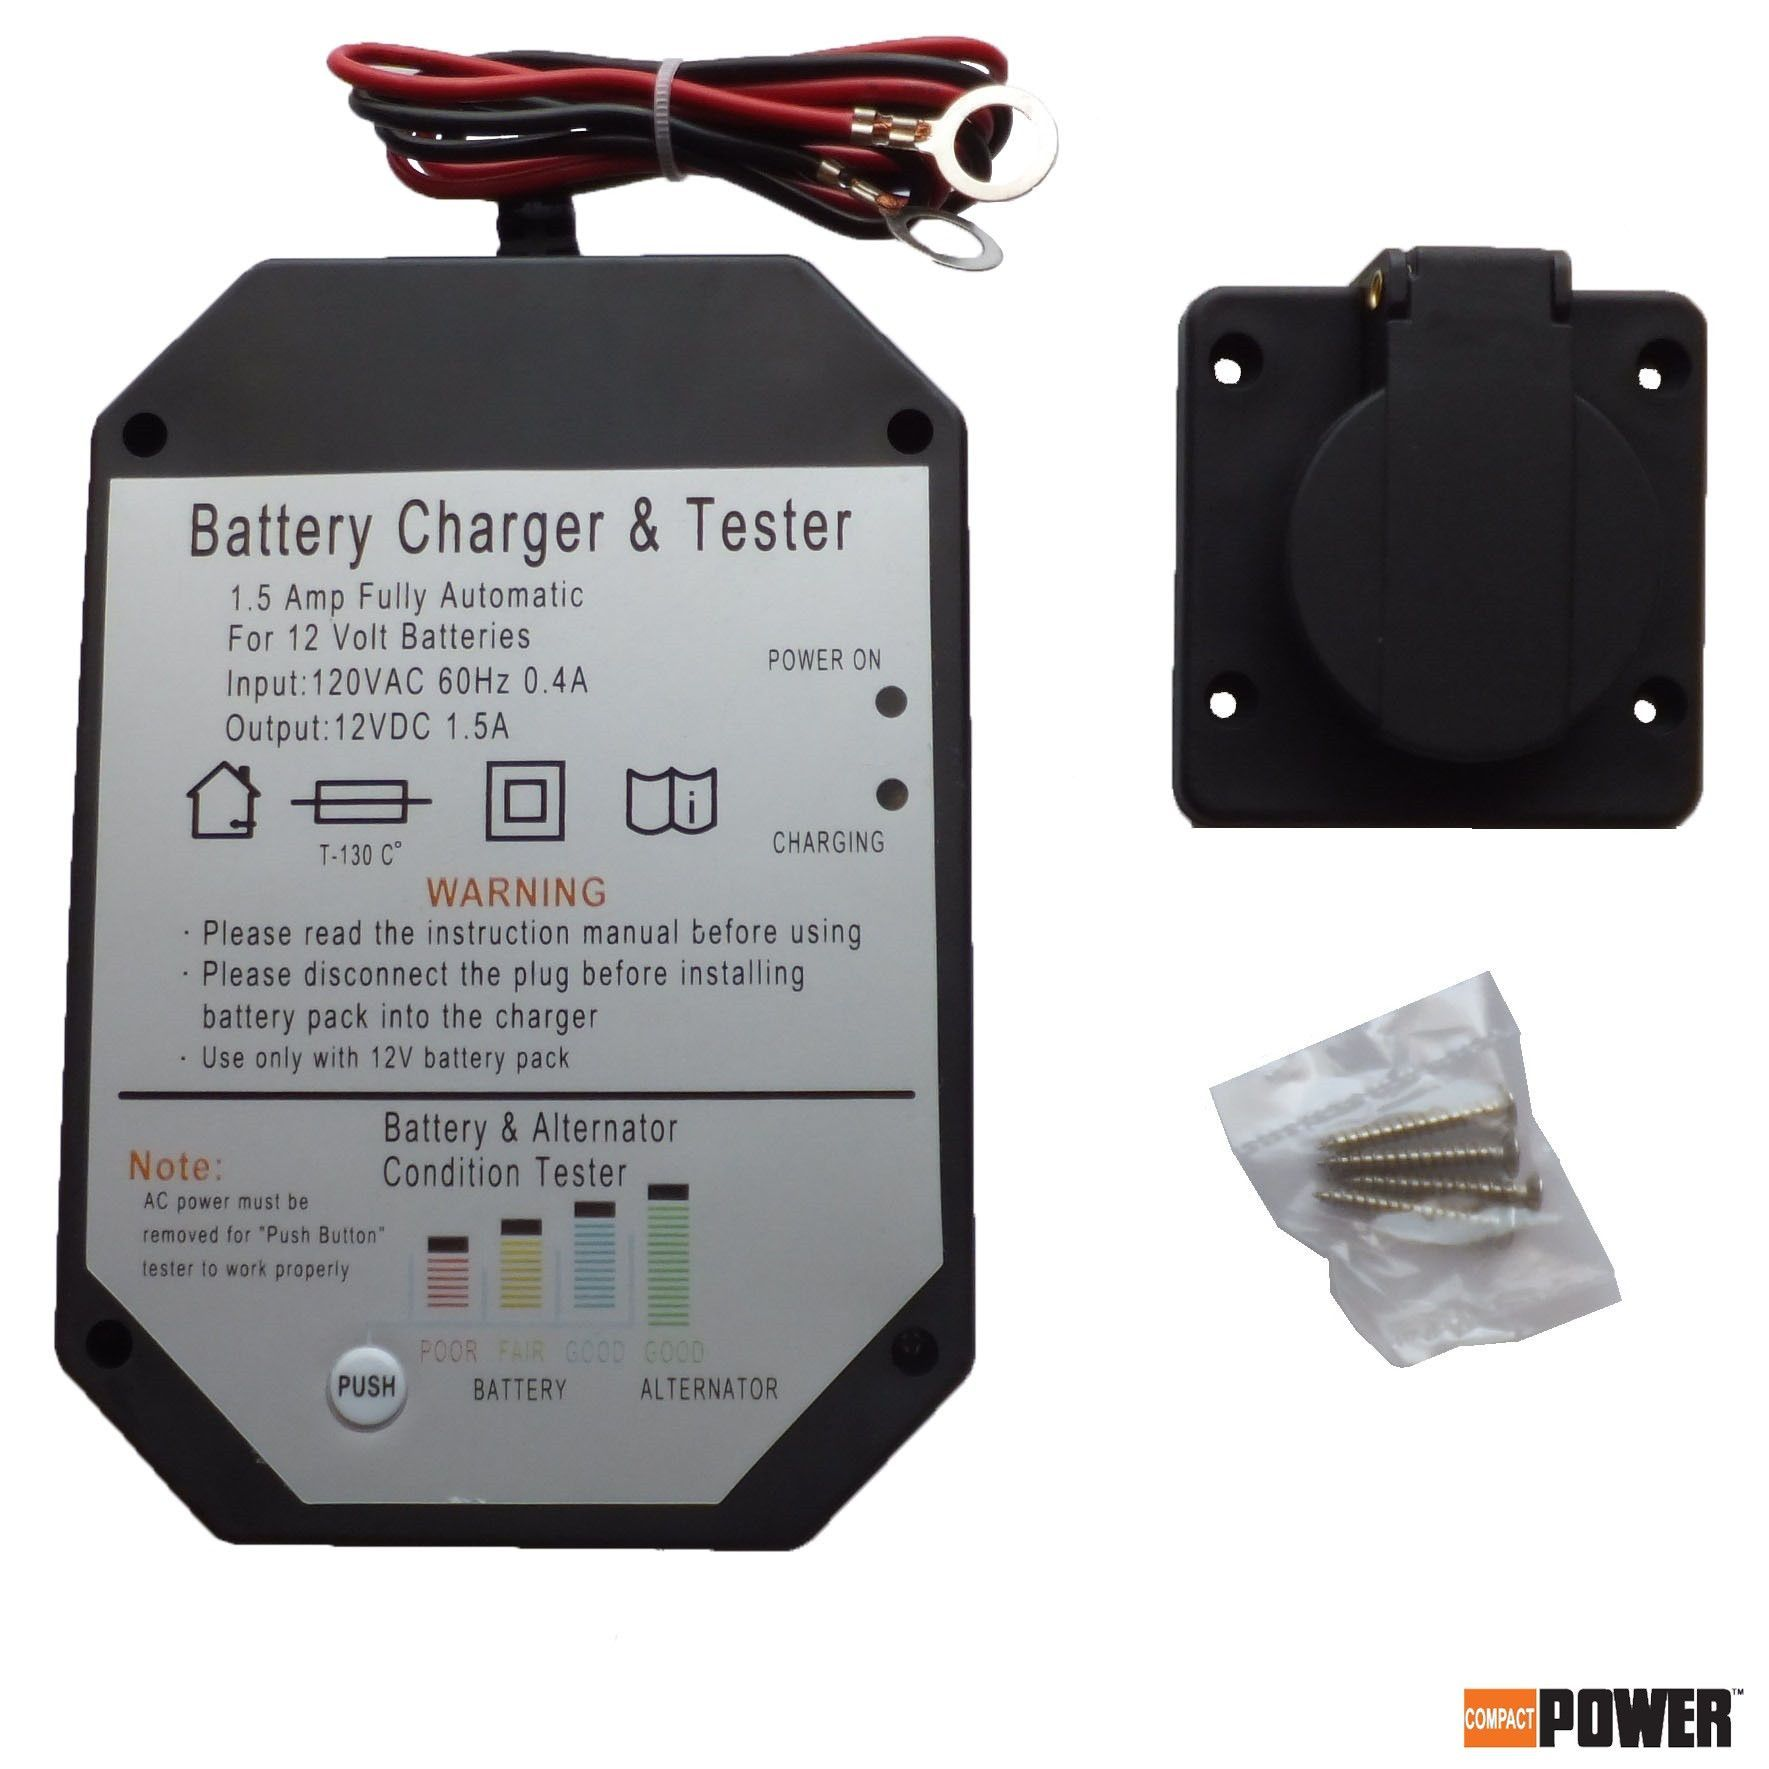 panel mount battery charger with battery tester 1 5 amps 4 prong trailer wiring diagram 4 prong trailer wiring diagram 4 prong trailer wiring diagram 4 prong trailer wiring diagram